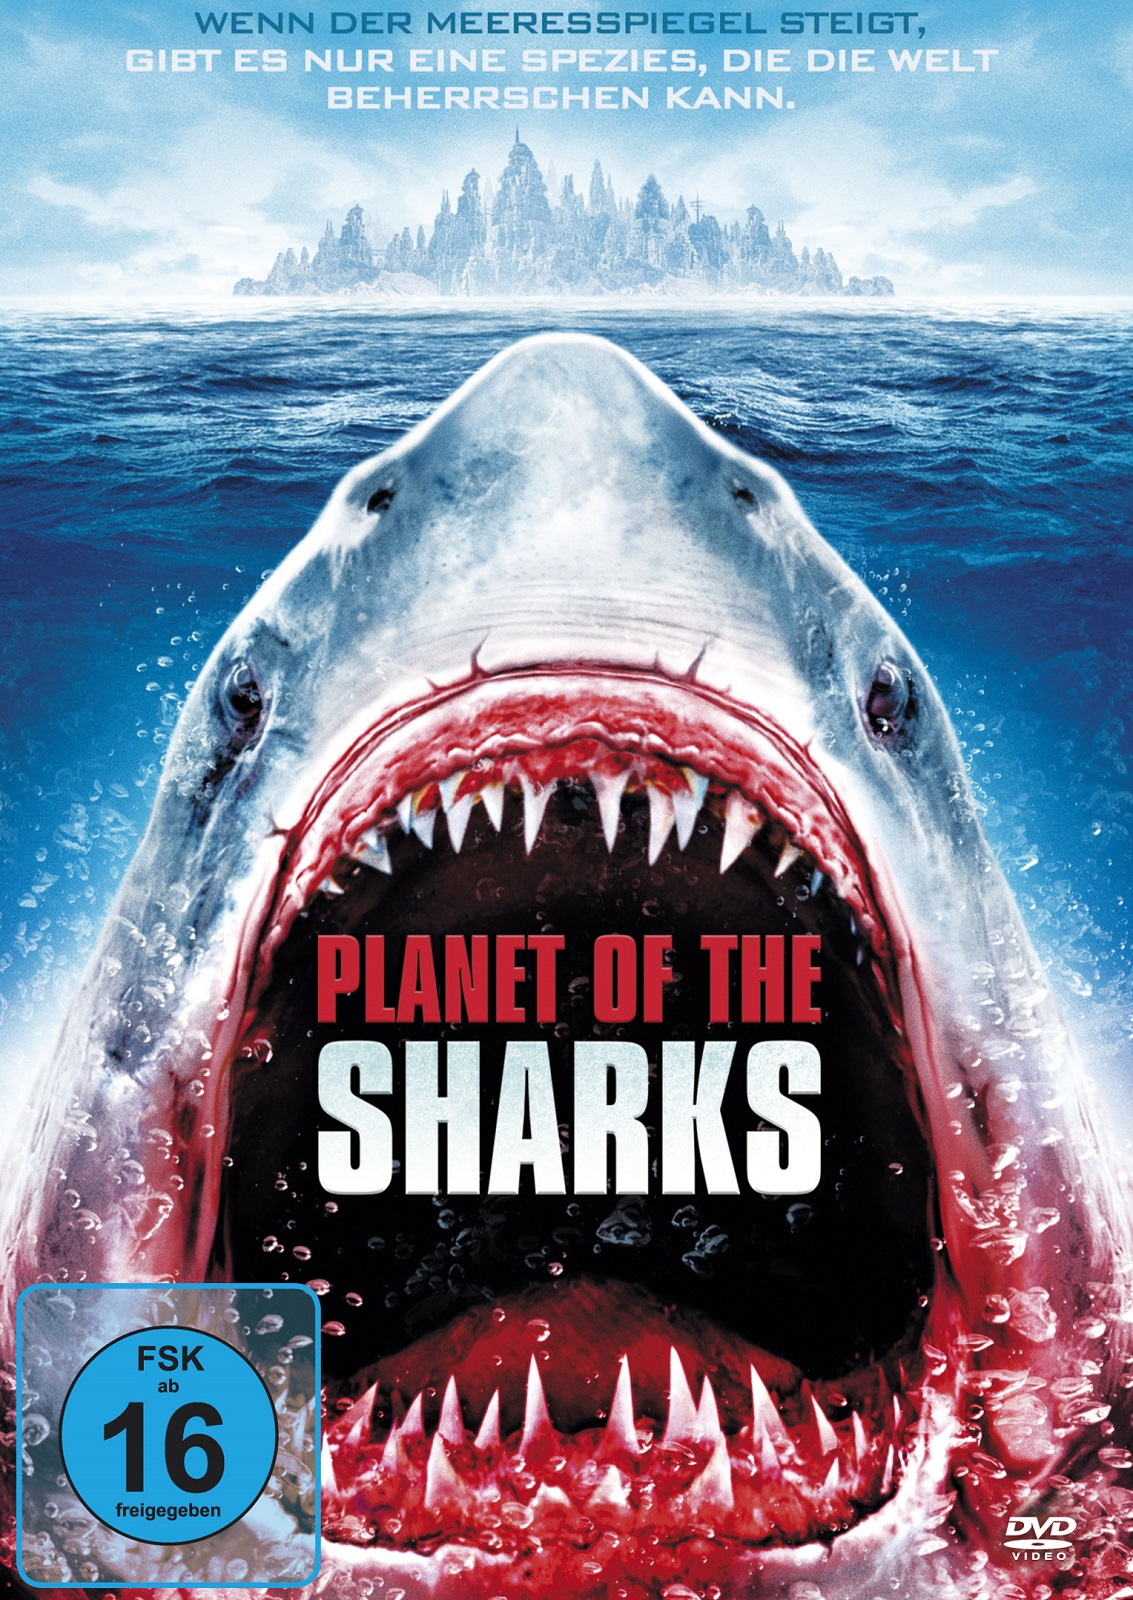 Planet of the Sharks (TV Movie 2016) - IMDb